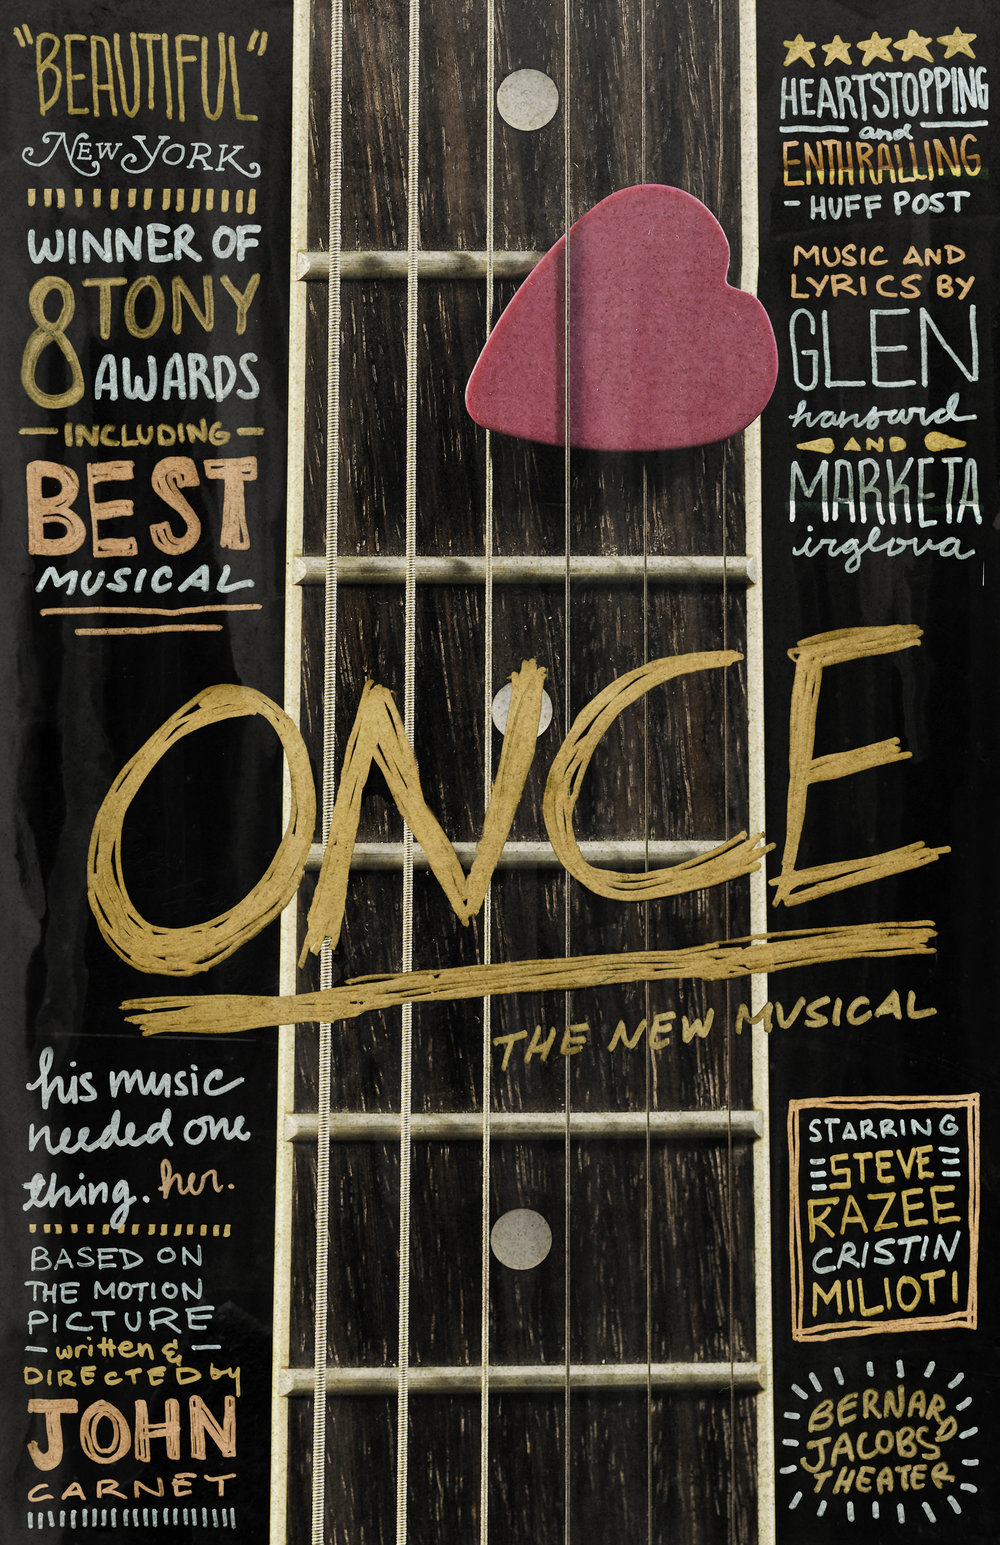 Once: The Musica  l theater poster, 2013 (student work)